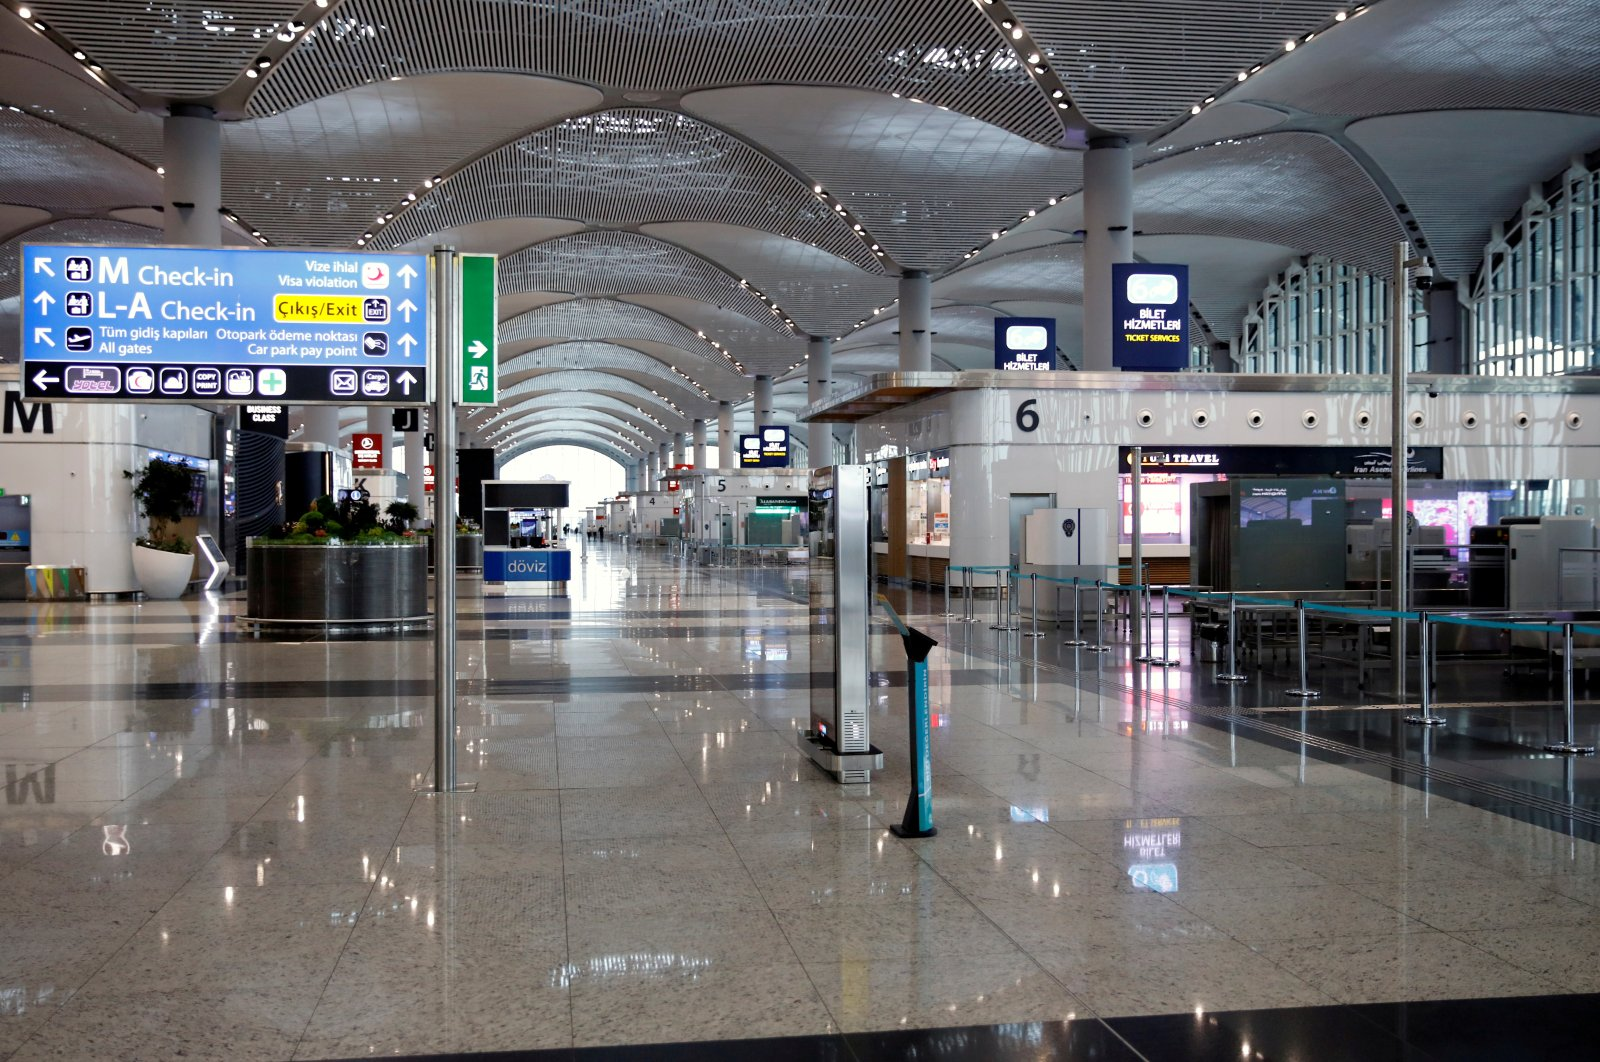 A general view of the nearly empty Istanbul Airport, during the outbreak of the novel coronavirus, Istanbul, Turkey, Sunday, March 29, 2020. (Reuters Photo)